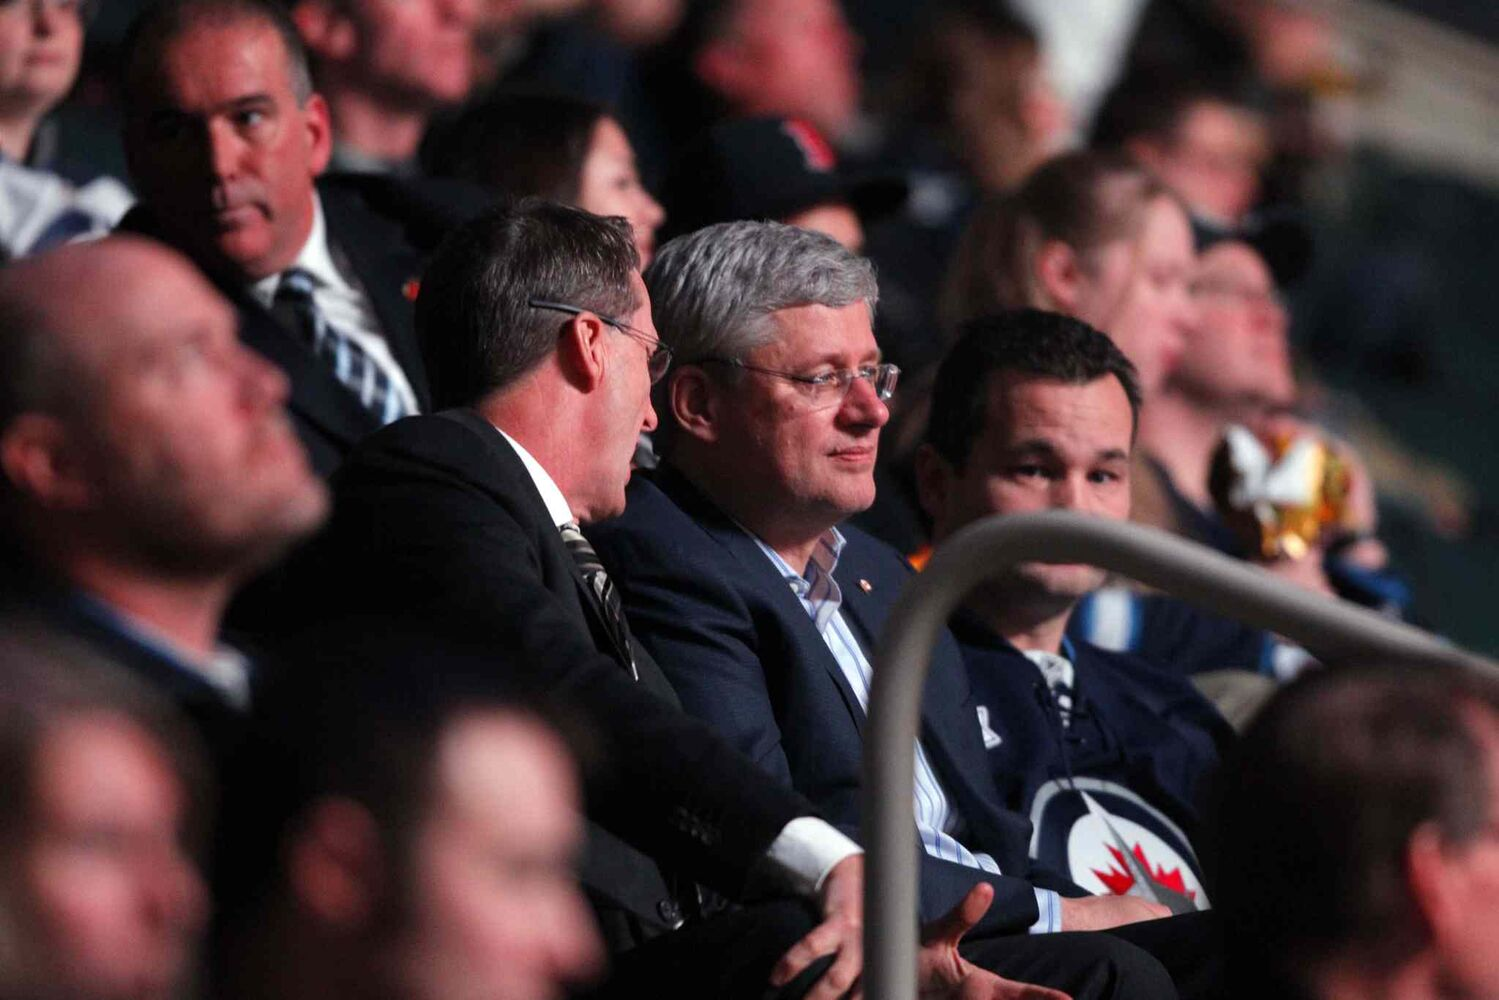 Prime Minister Stephen Harper talks with Jets owner Mark Chipman in the stands.